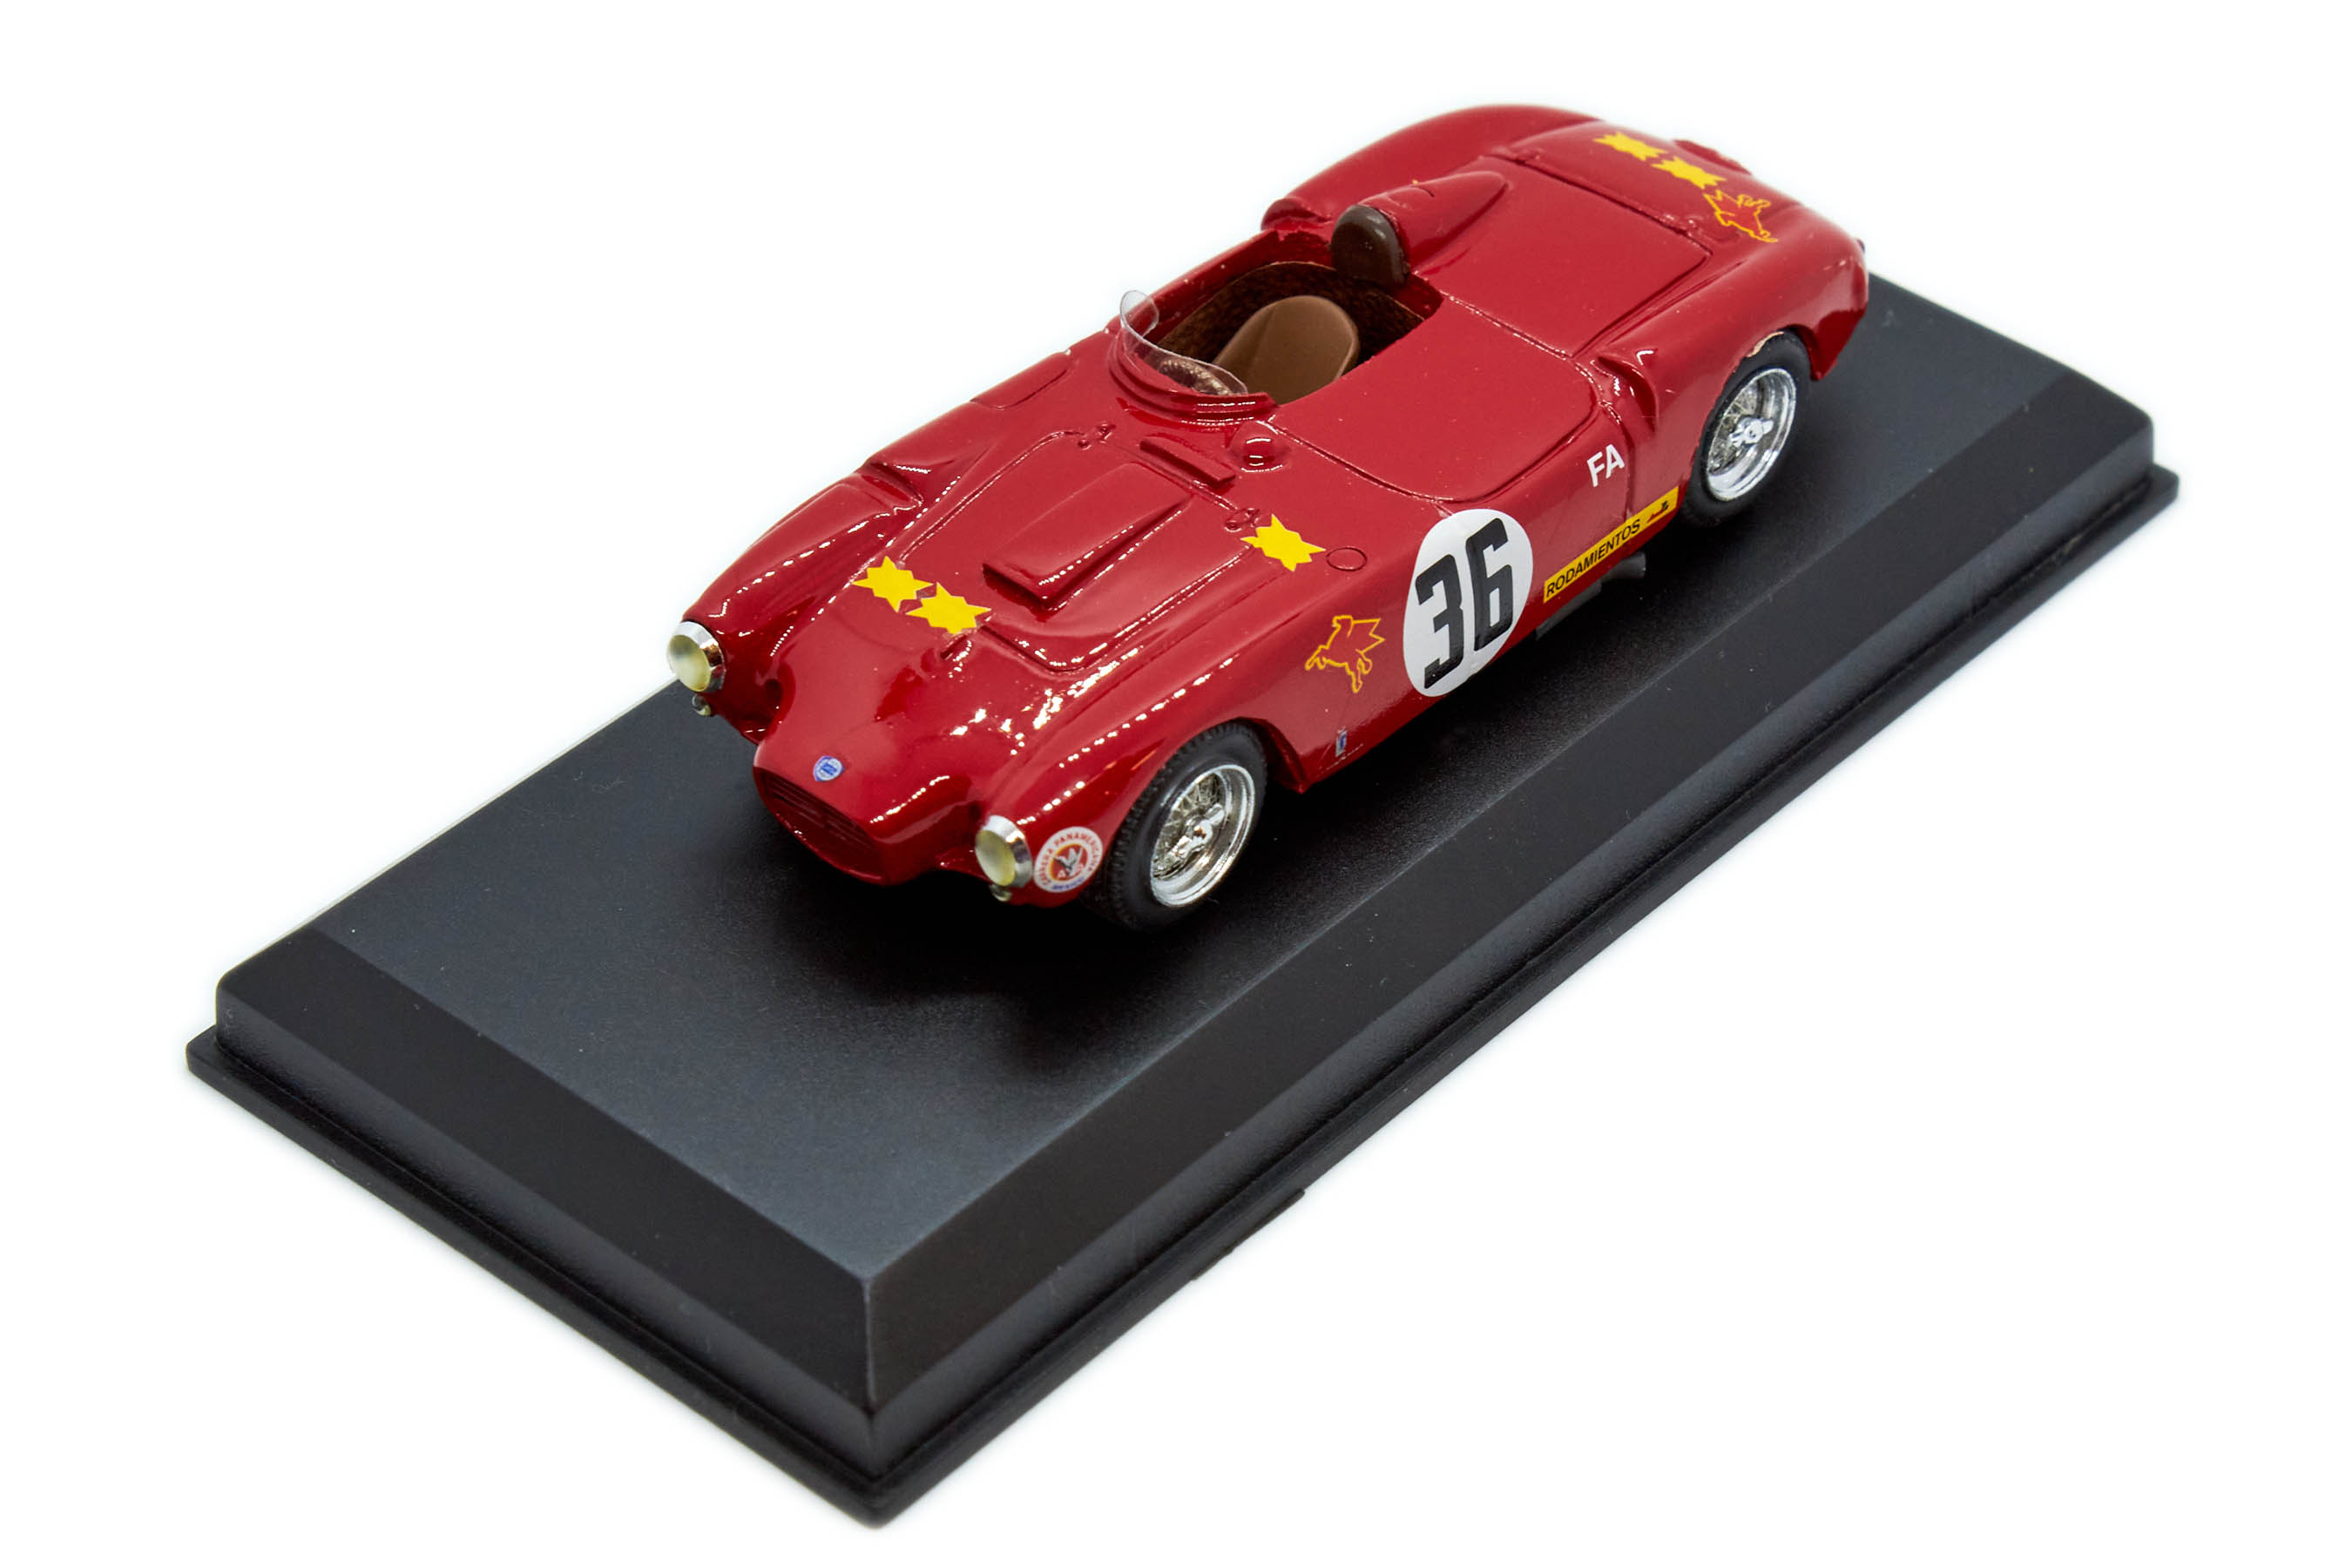 Lancia D24 Carrera Panamerica 54 #36 1/43 Top Model Collection Made in Italy